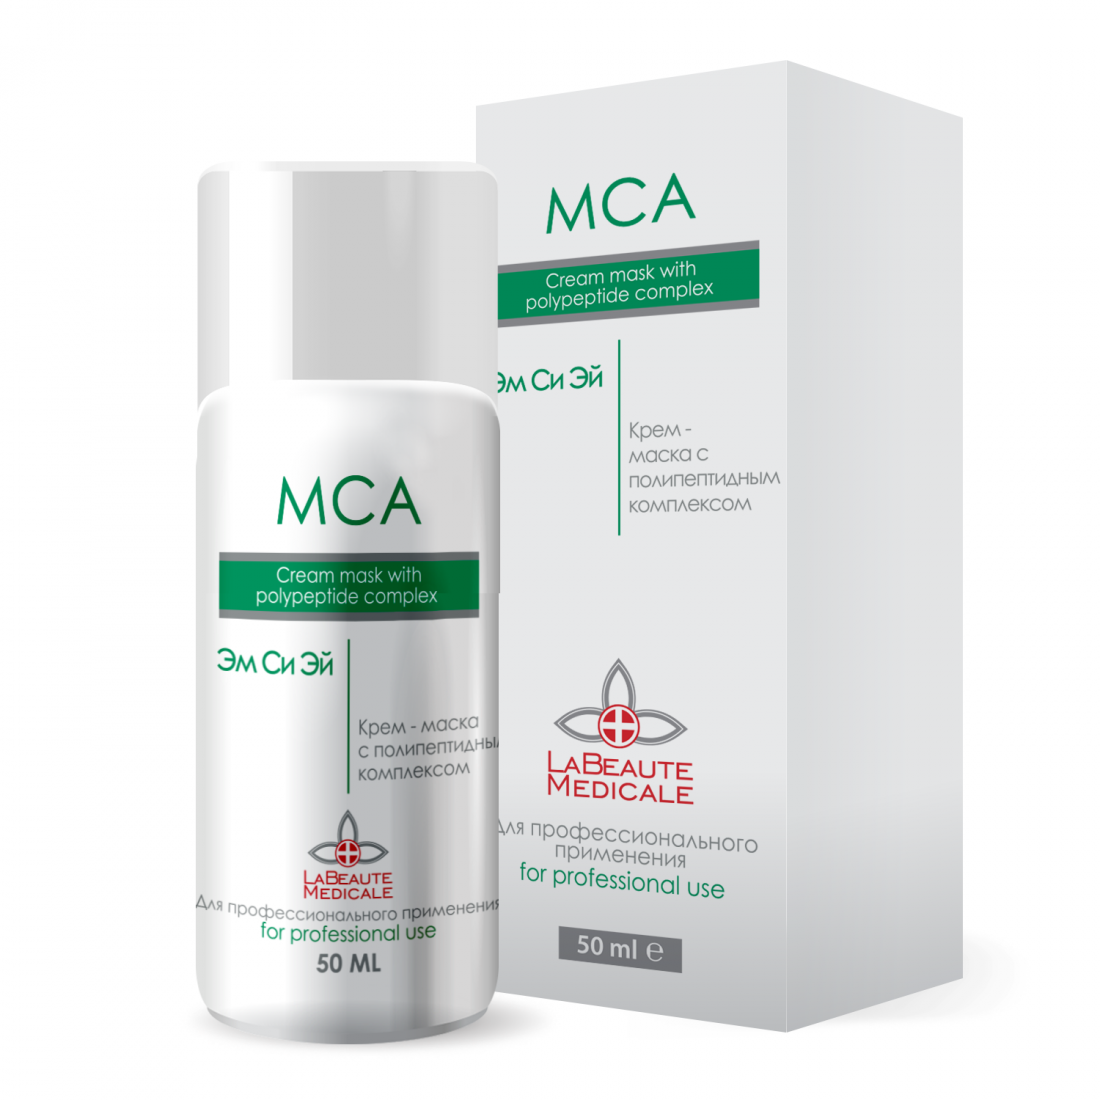 Крем-маска для лица с пептидным комплексом MCA CREAM MASK, 50 мл